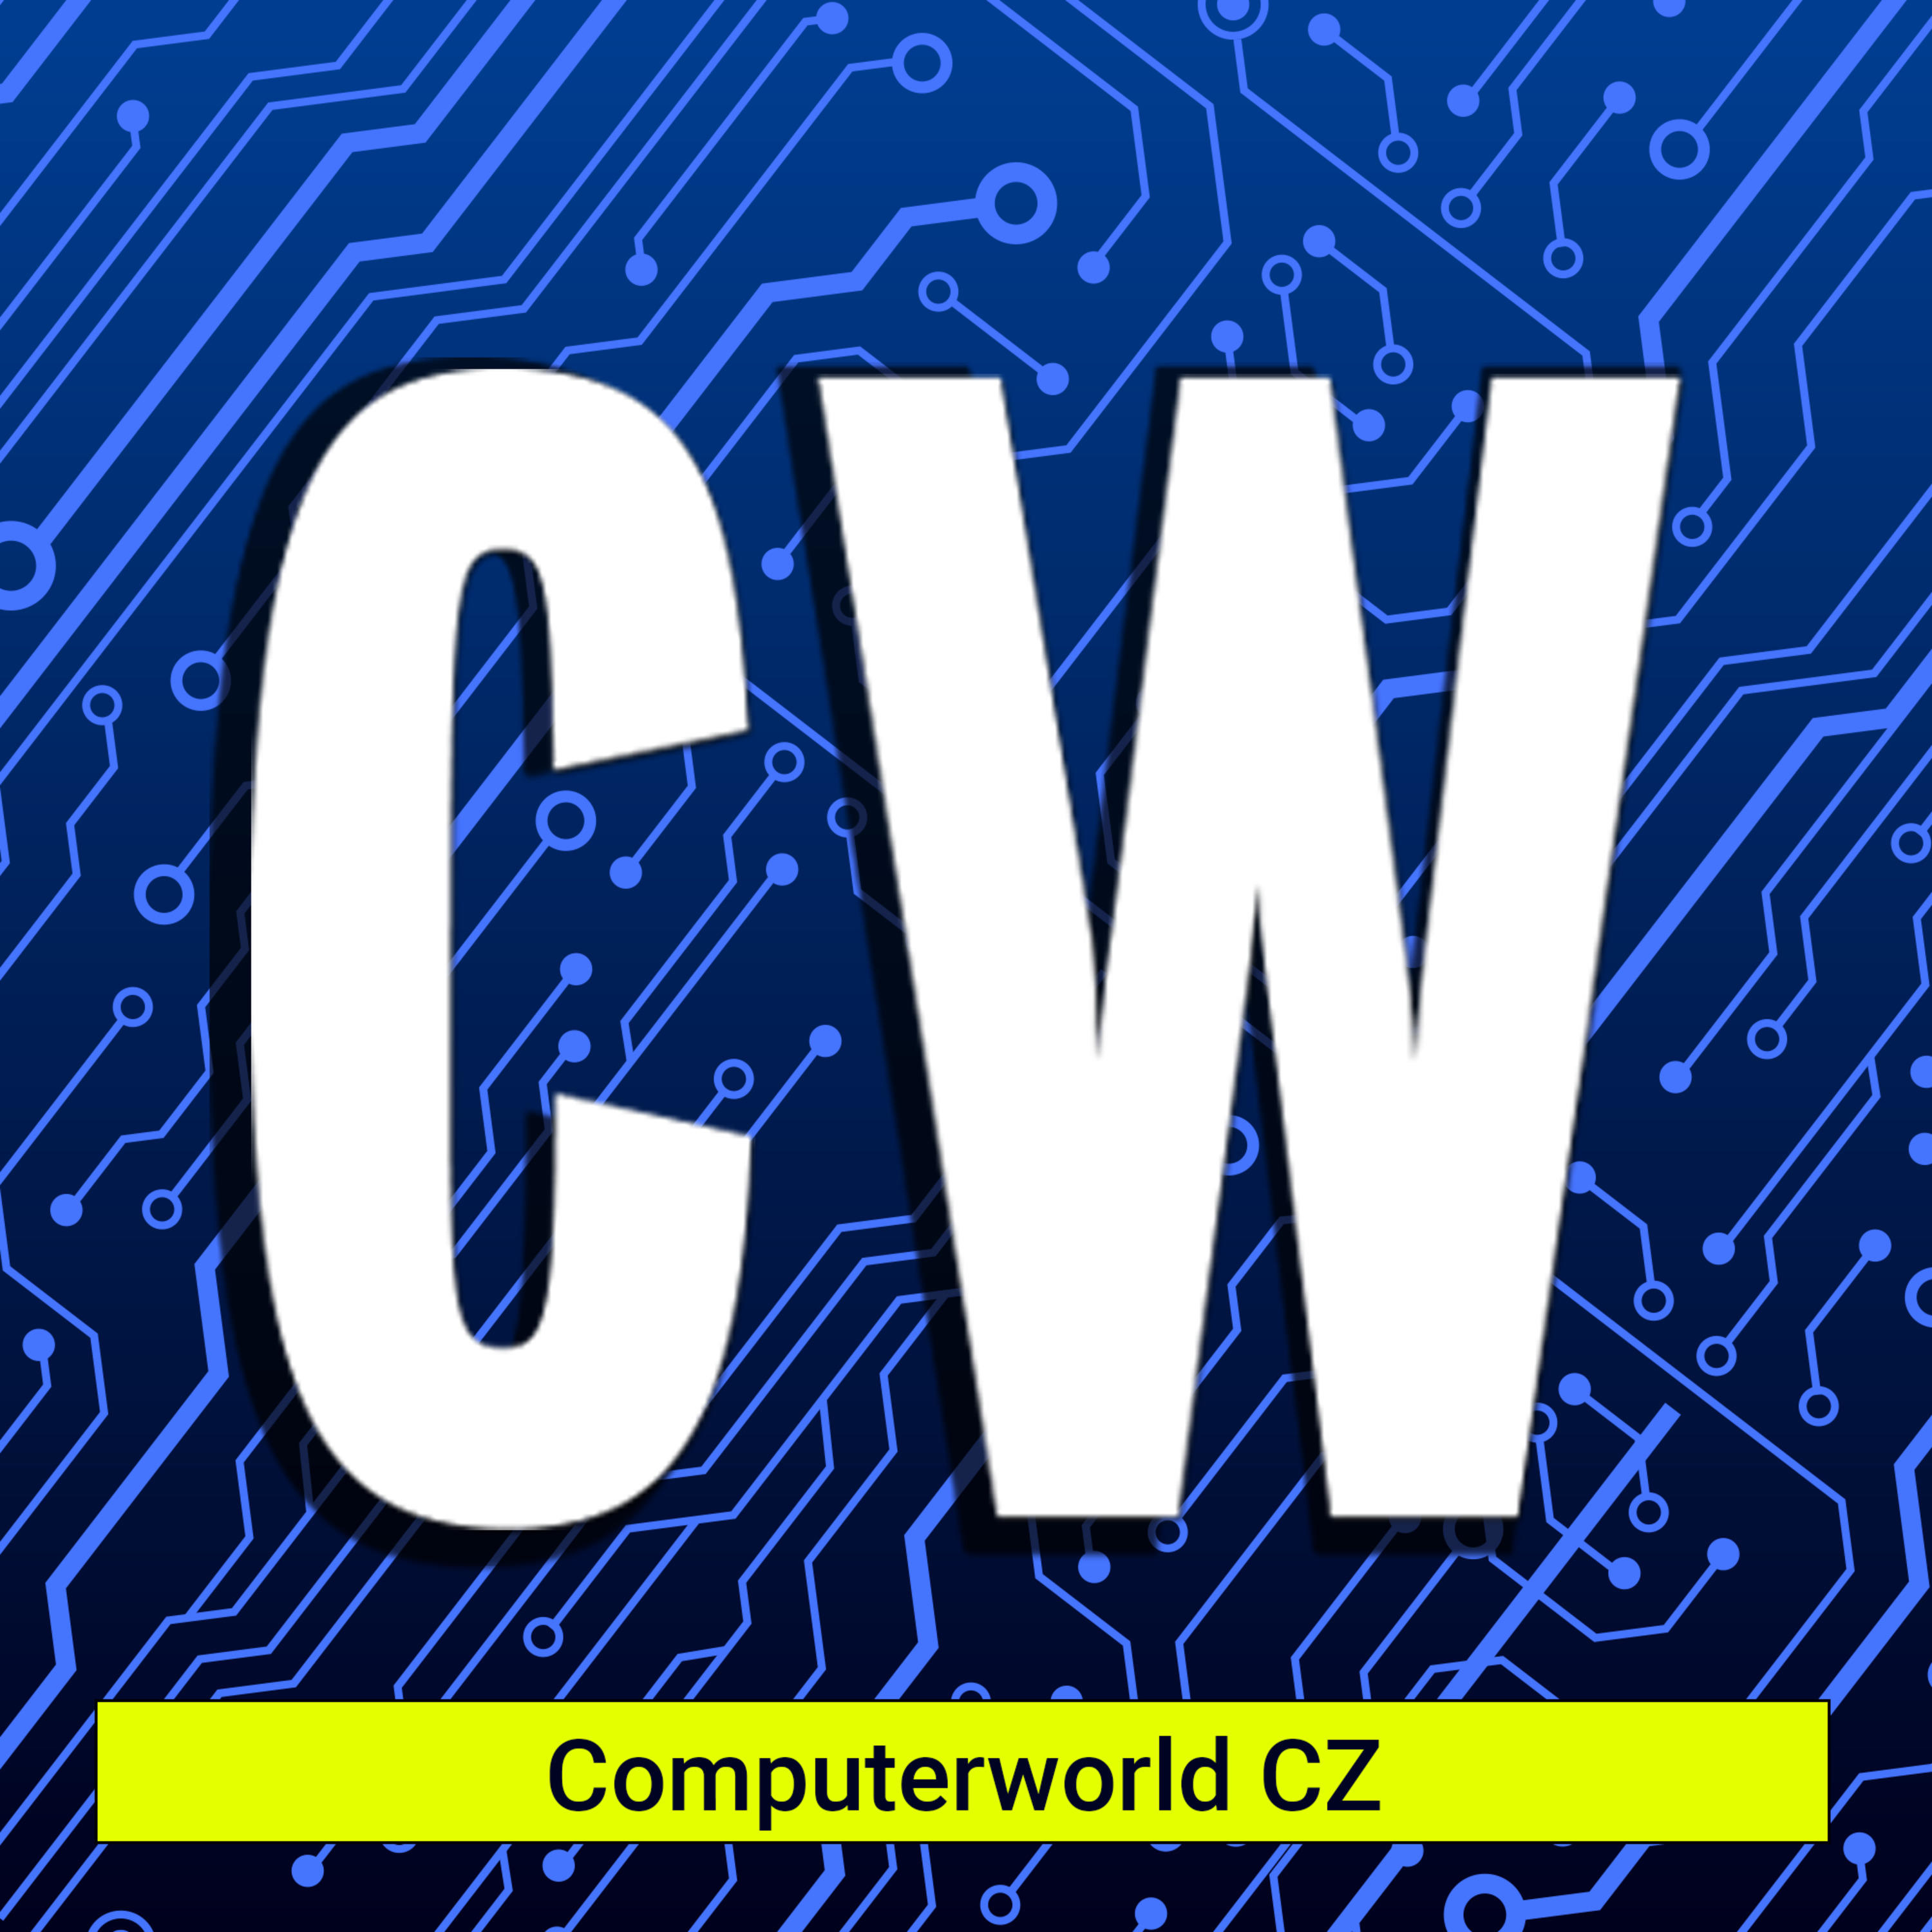 Computerworld CZ